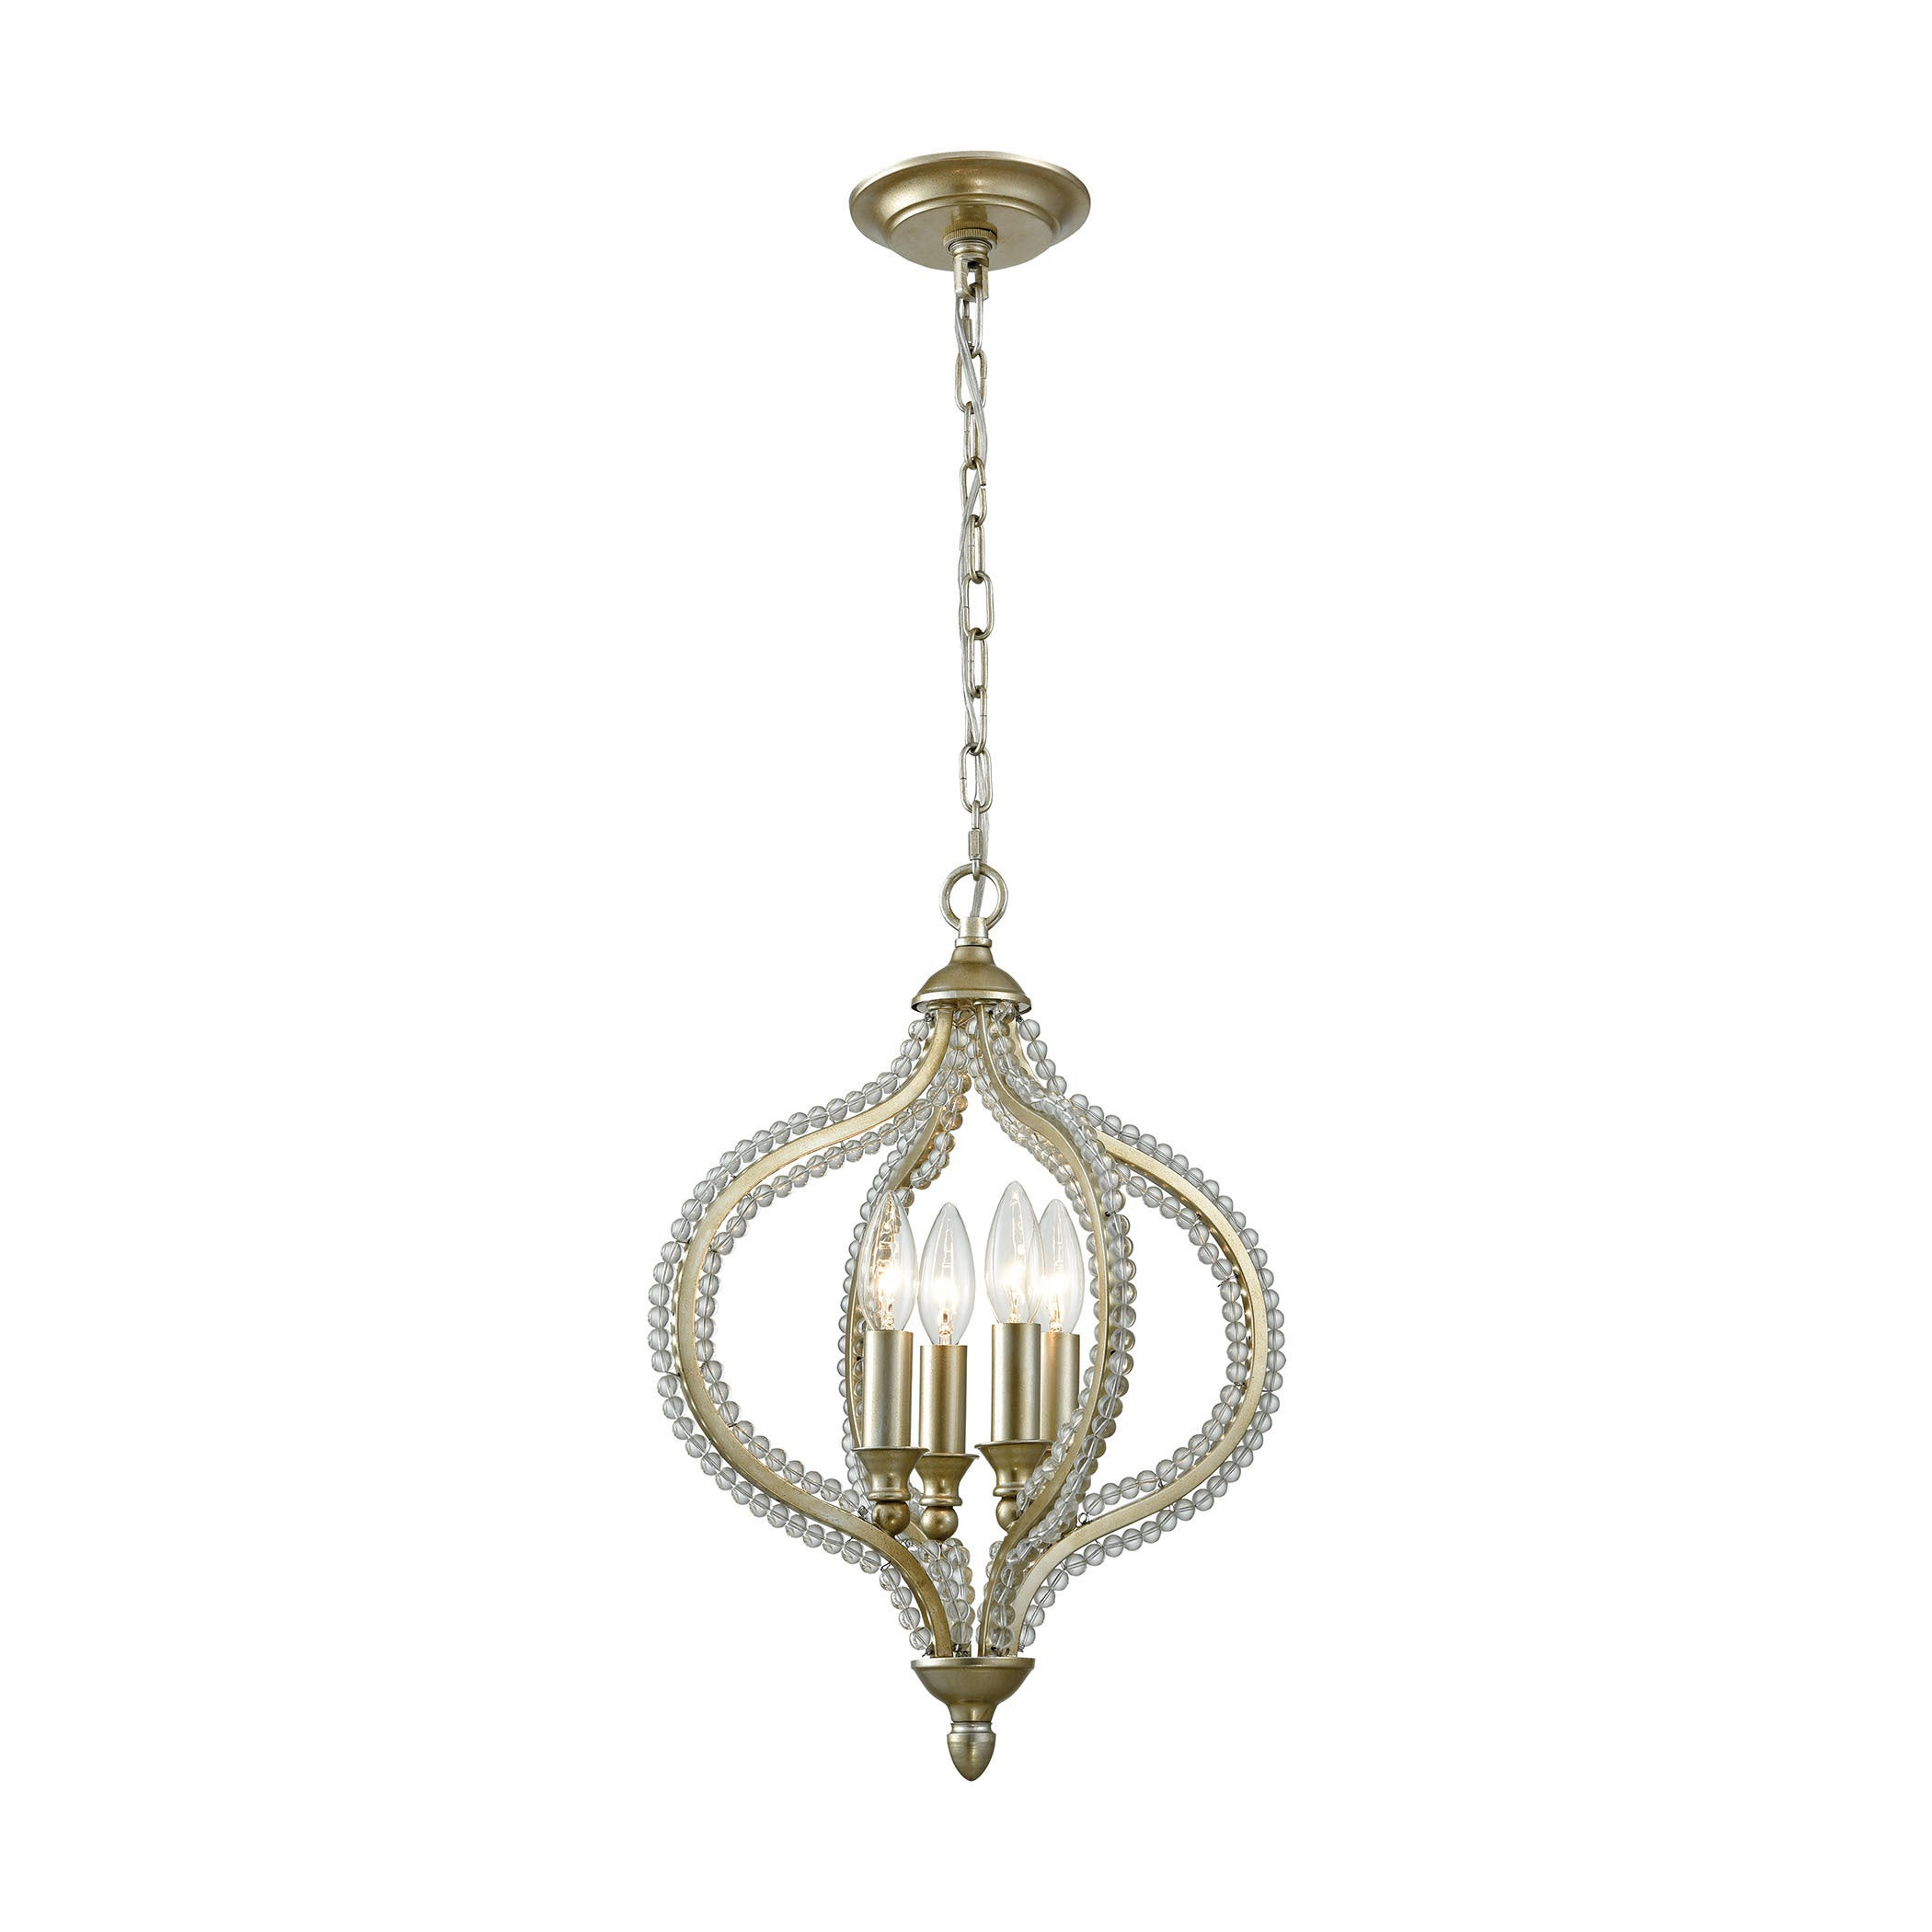 Bennington 4 Light Candle Style Chandeliers In Well Known Bennington 4 Light Pendant, Aged Silver (View 11 of 20)